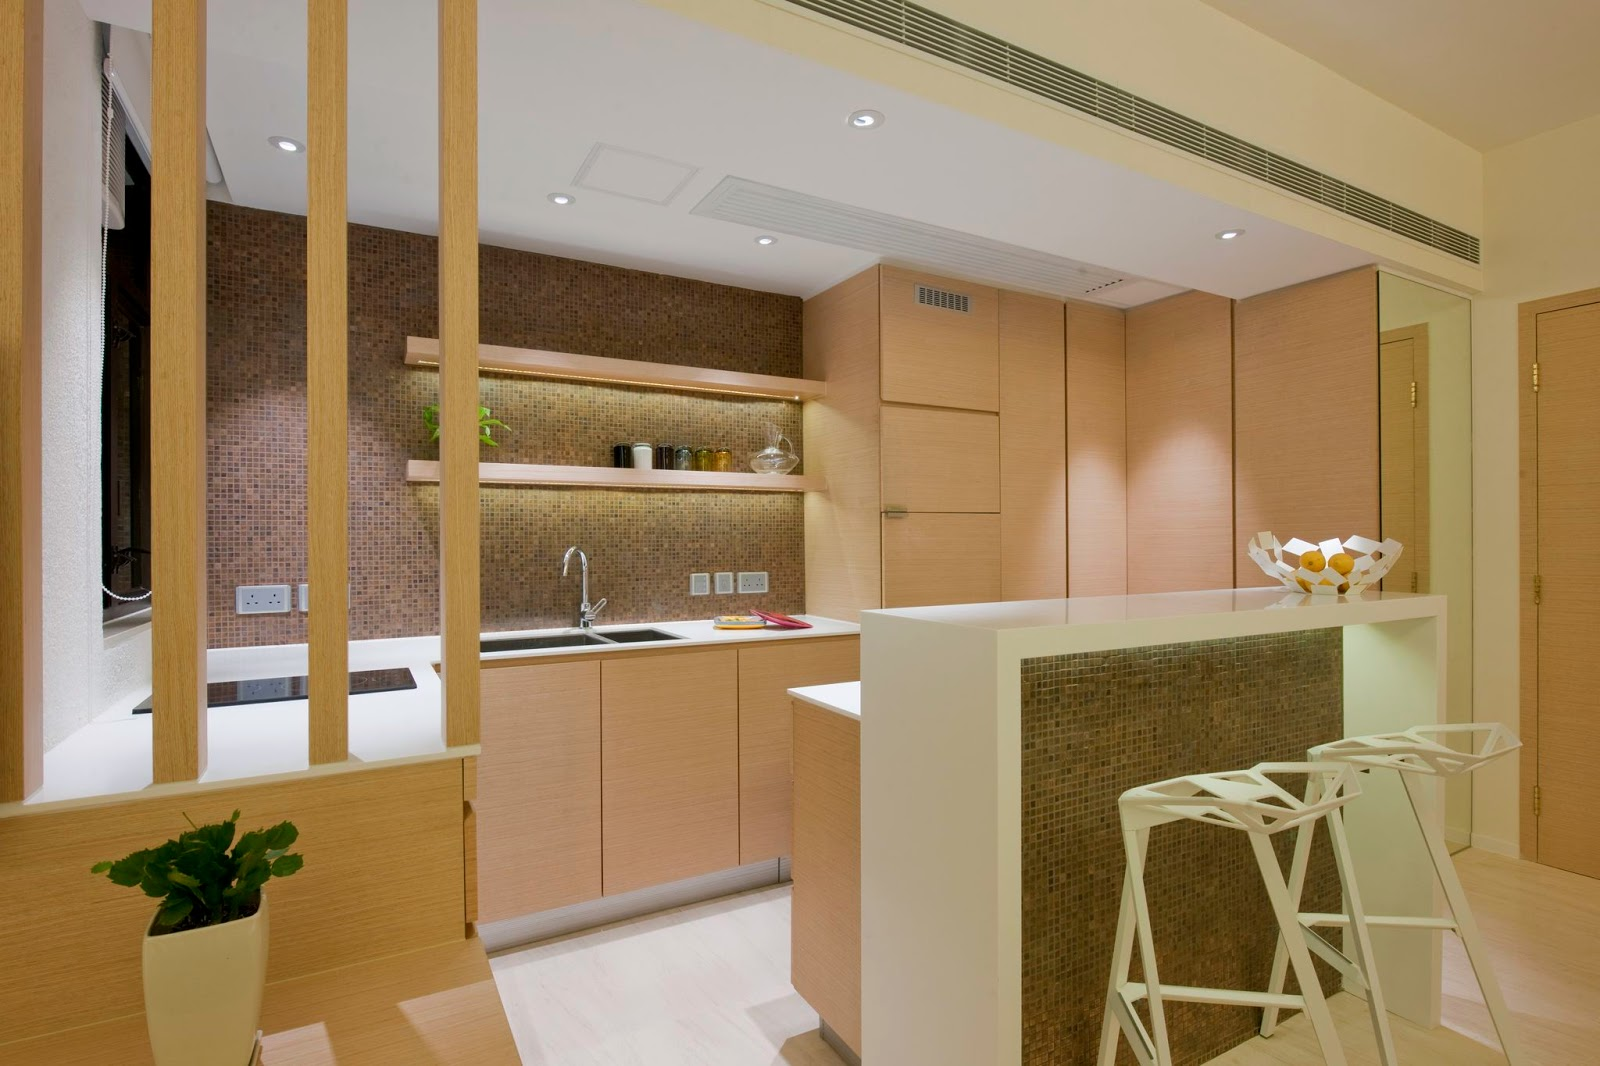 Hotel With Kitchen Hong Kong Lowes Appliance Bundles Interior Design Tips Ideas Clifton Leung Like City Apartment